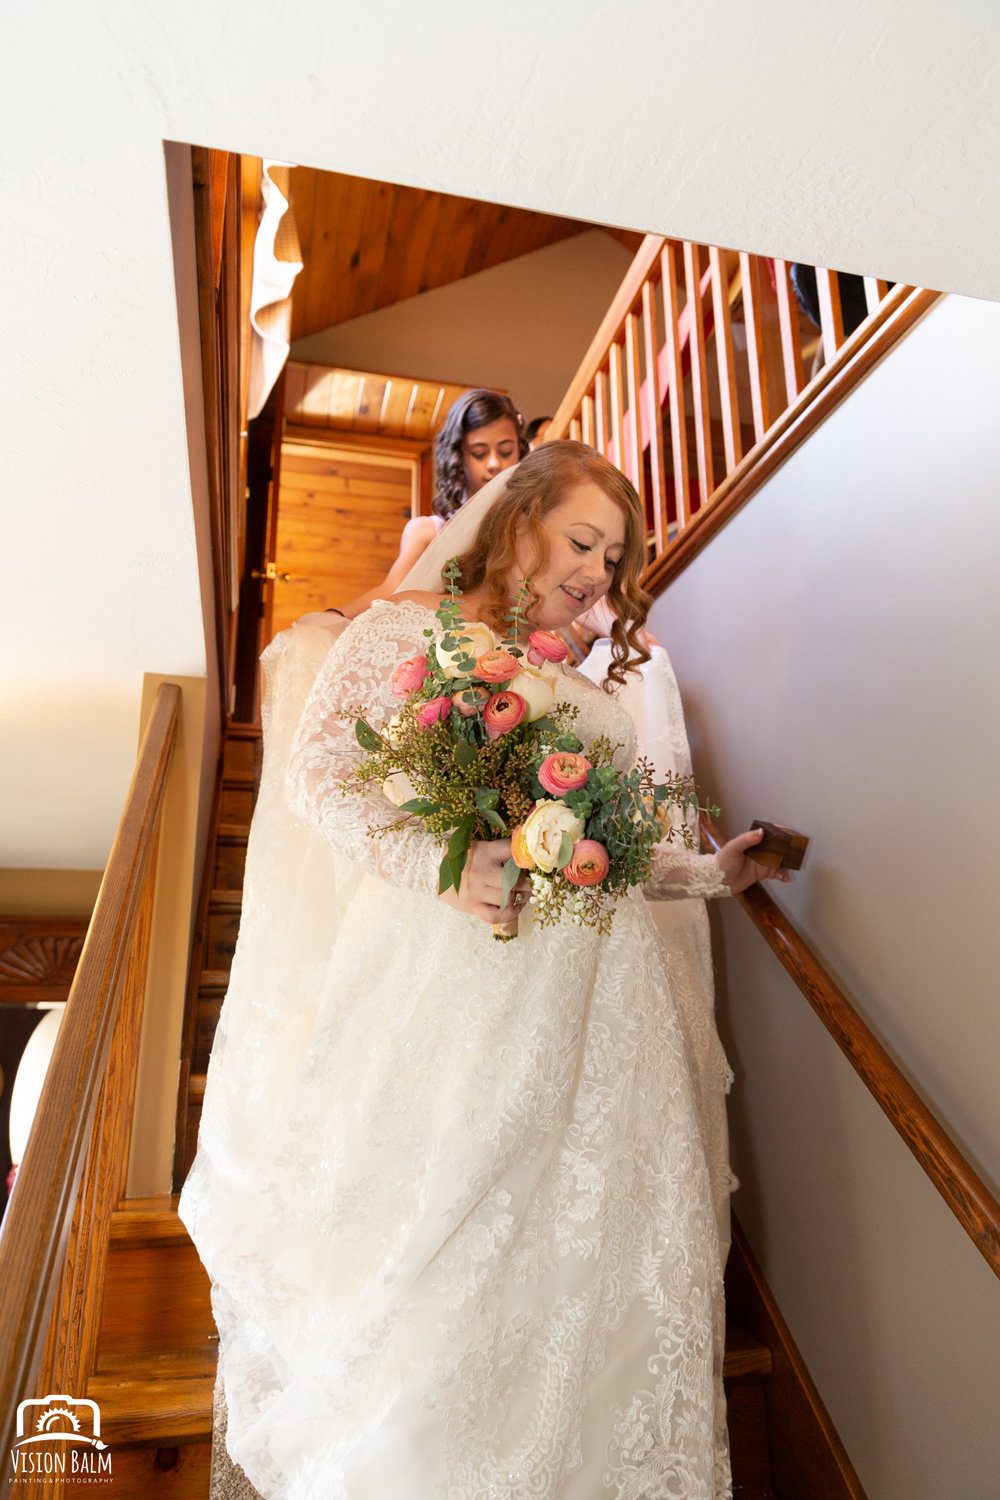 Lifestyle wedding photo of bride walking down the stairs in Zuka's Hilltop Barn by Vision Balm in Charleston, SC.